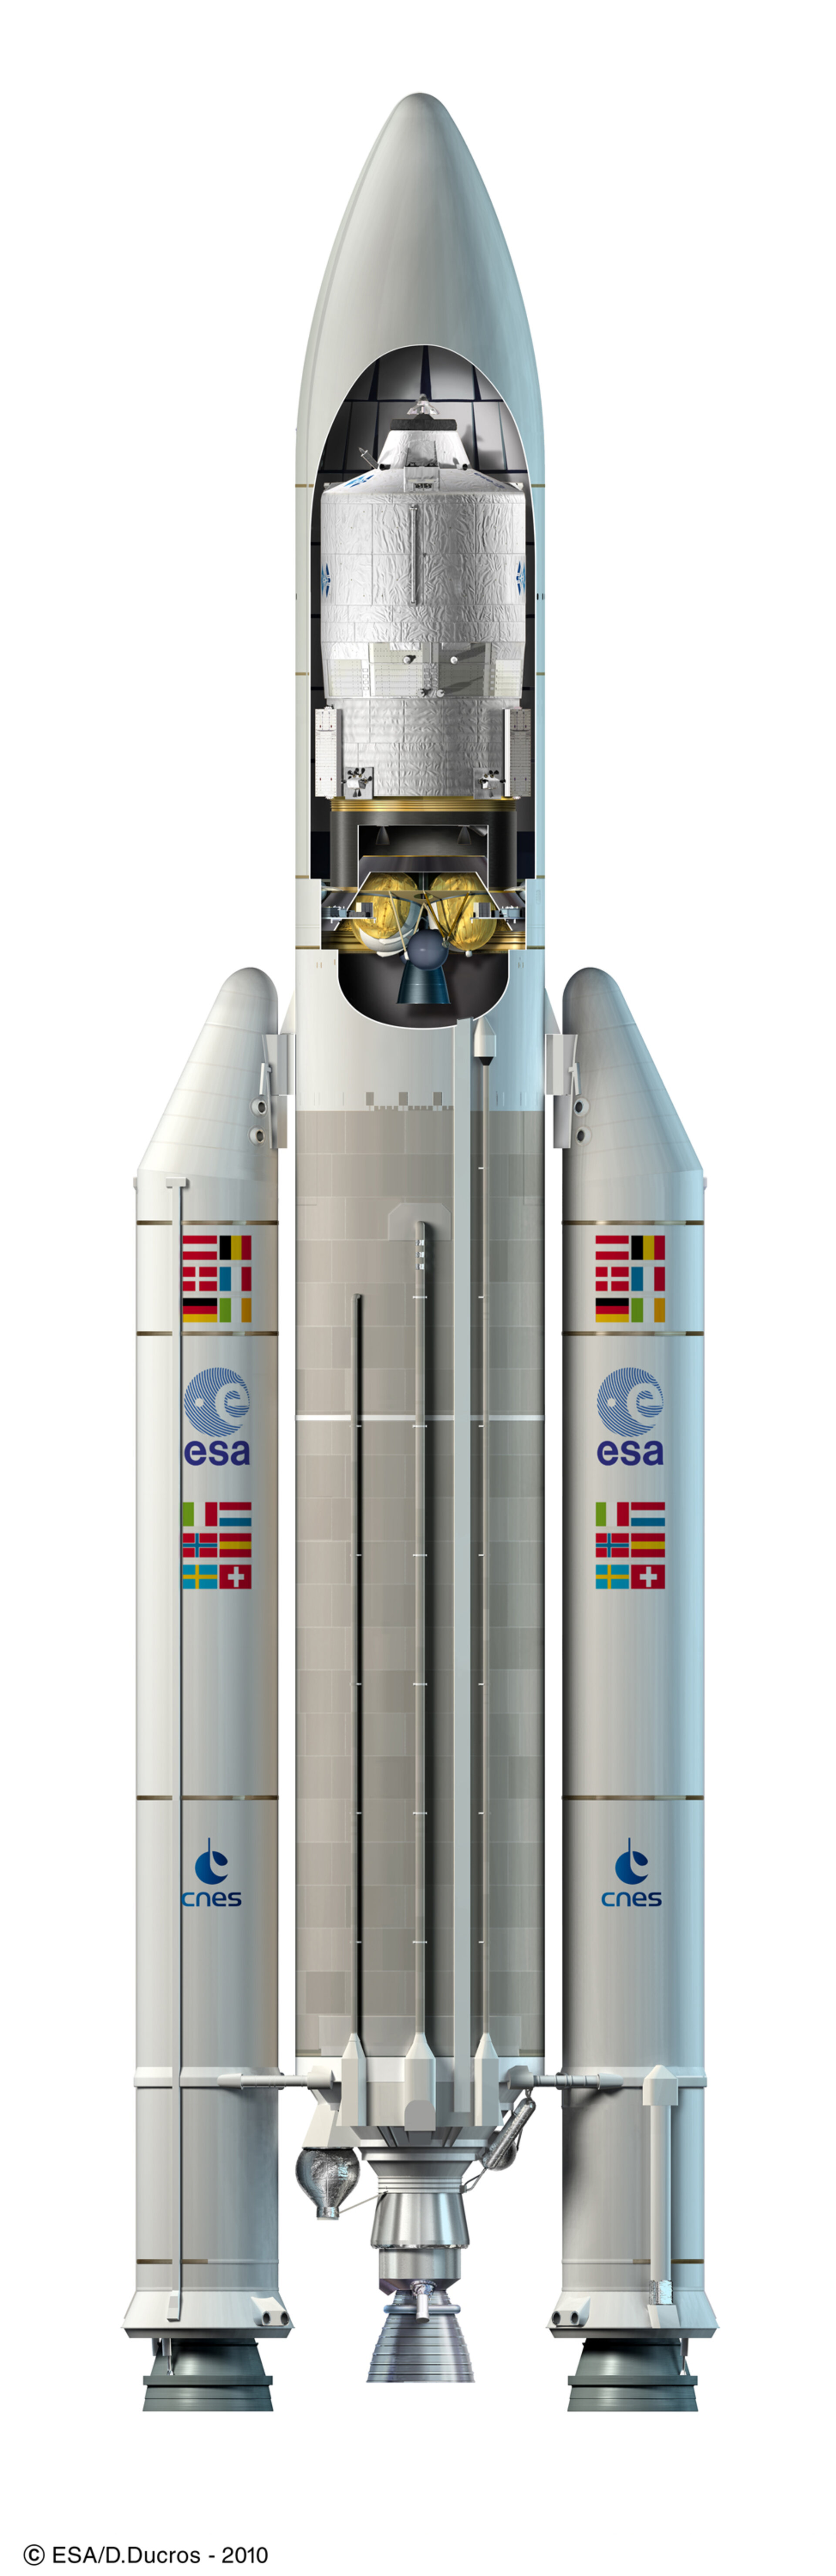 Artist's view of ESA's ATV Johannes Kepler under the payload fairing of an Ariane 5 launcher